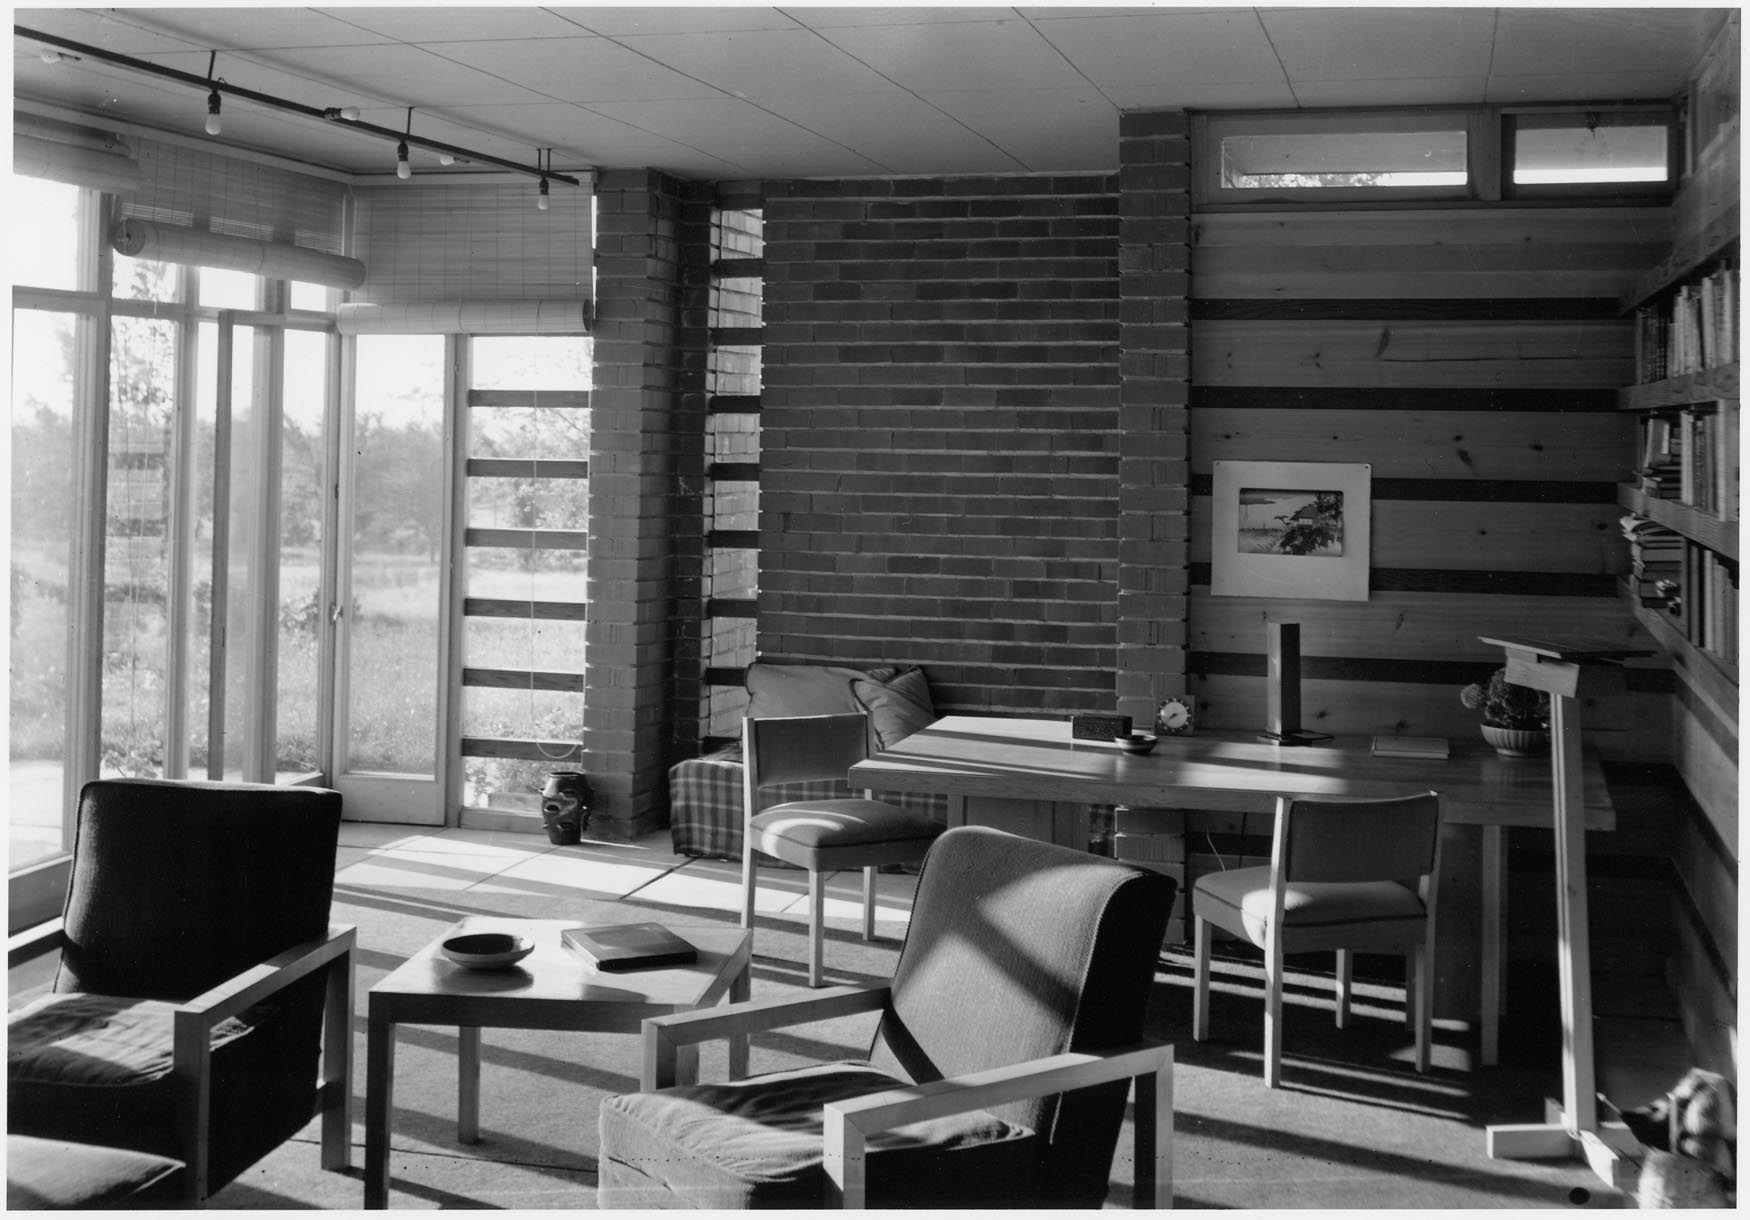 Herbert Jacobs House in Madison, Wisconsin, interior view